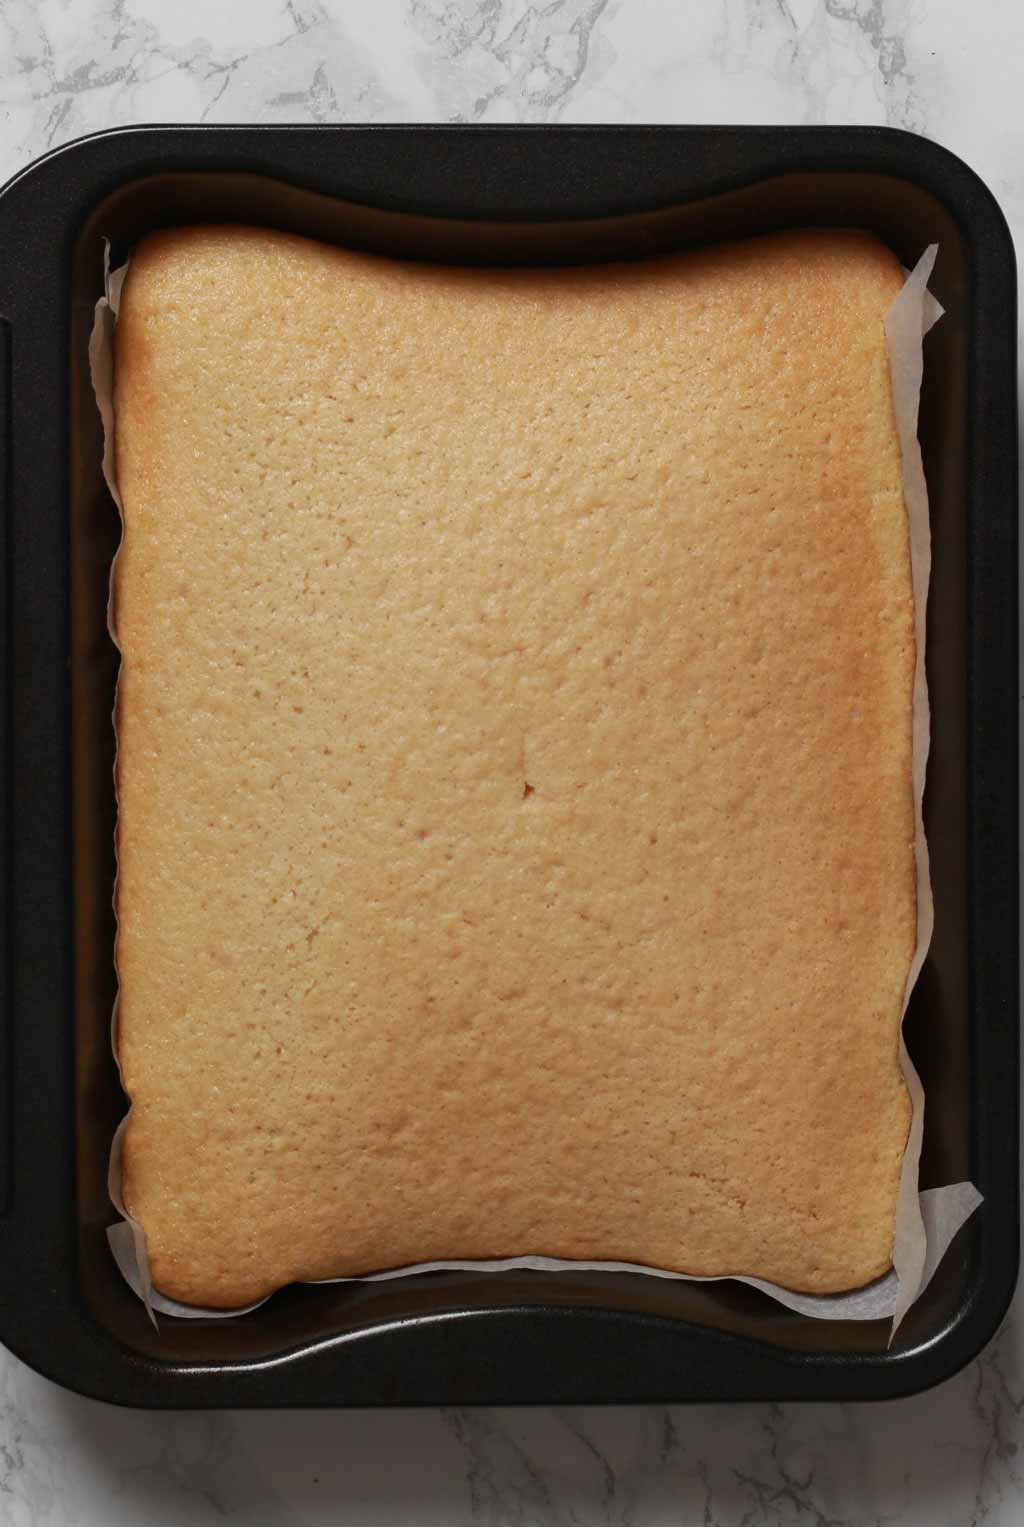 Baked Cake In Tray